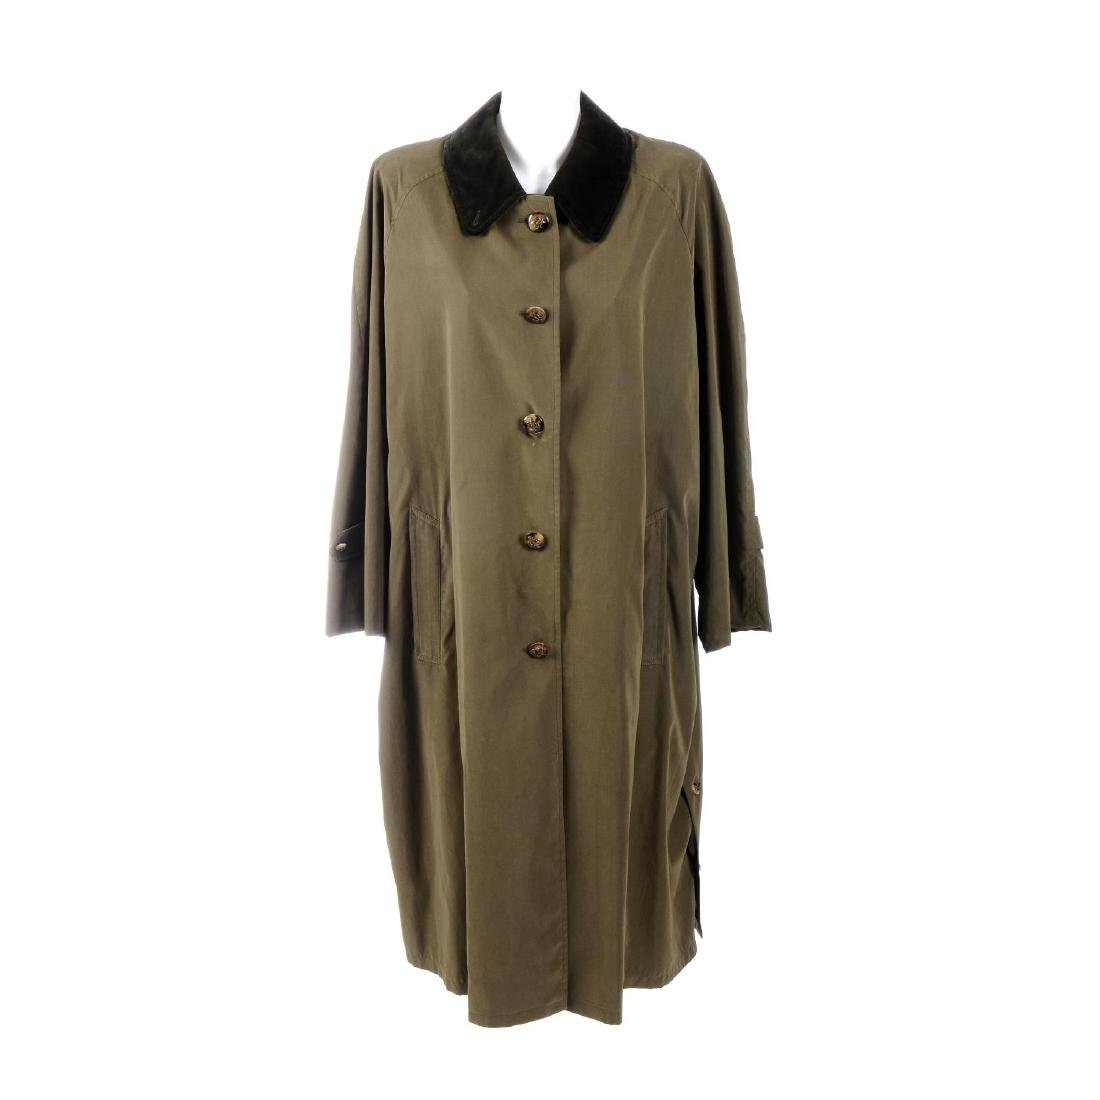 HERMÈS - a trench coat. Designed with a contrasting